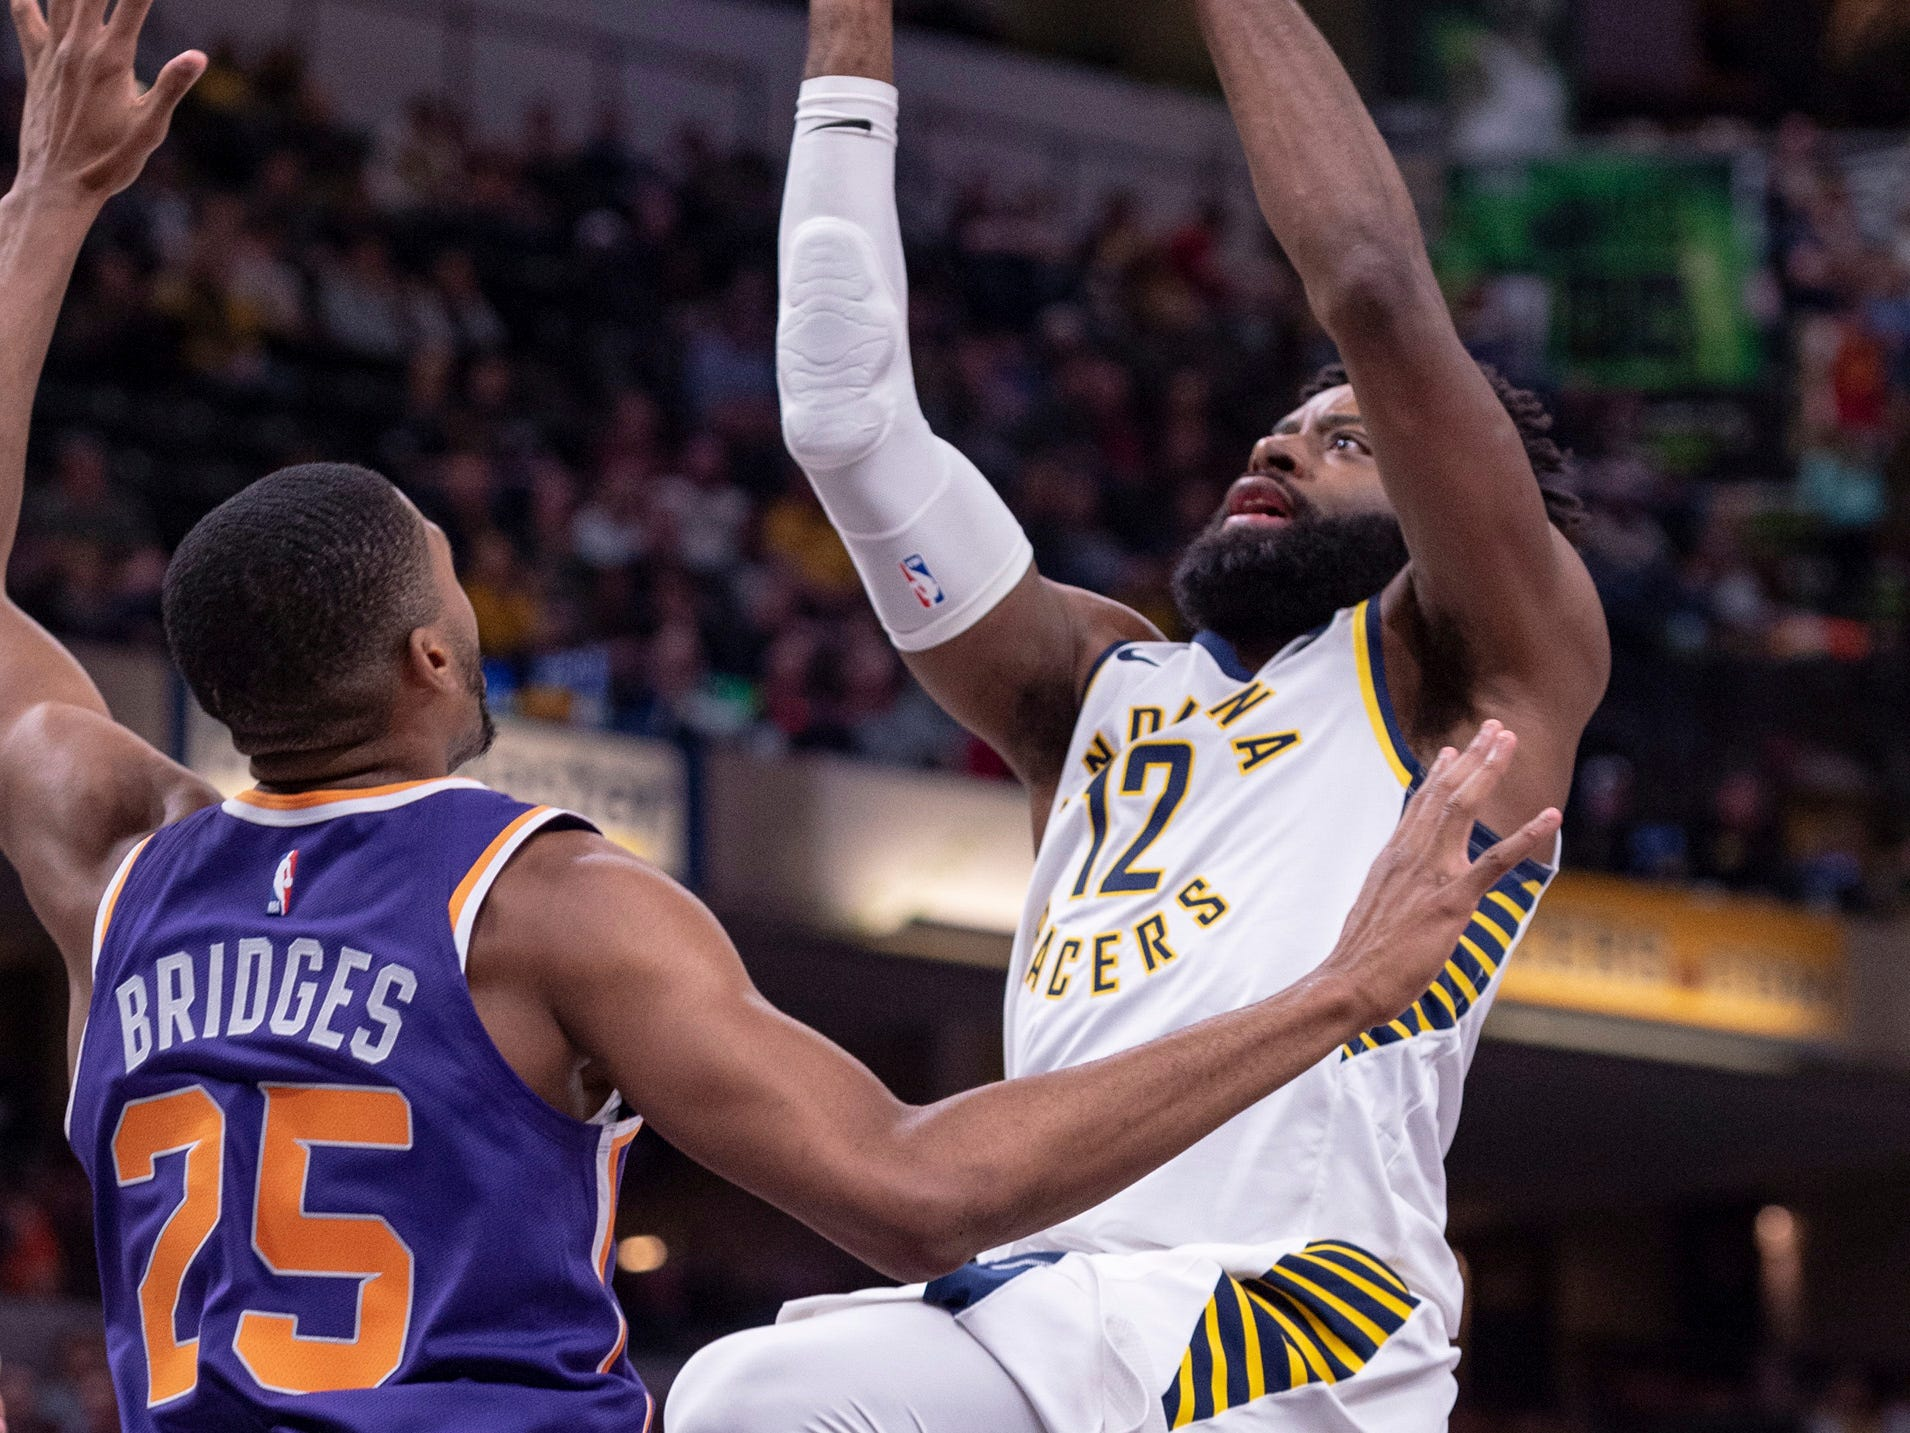 Indiana Pacers guard Tyreke Evans (12) is defended by Phoenix Suns forward Mikal Bridges (25) during the second half of an NBA basketball game Tuesday, Jan. 15, 2019, in Indianapolis. The Pacers won 131-97.